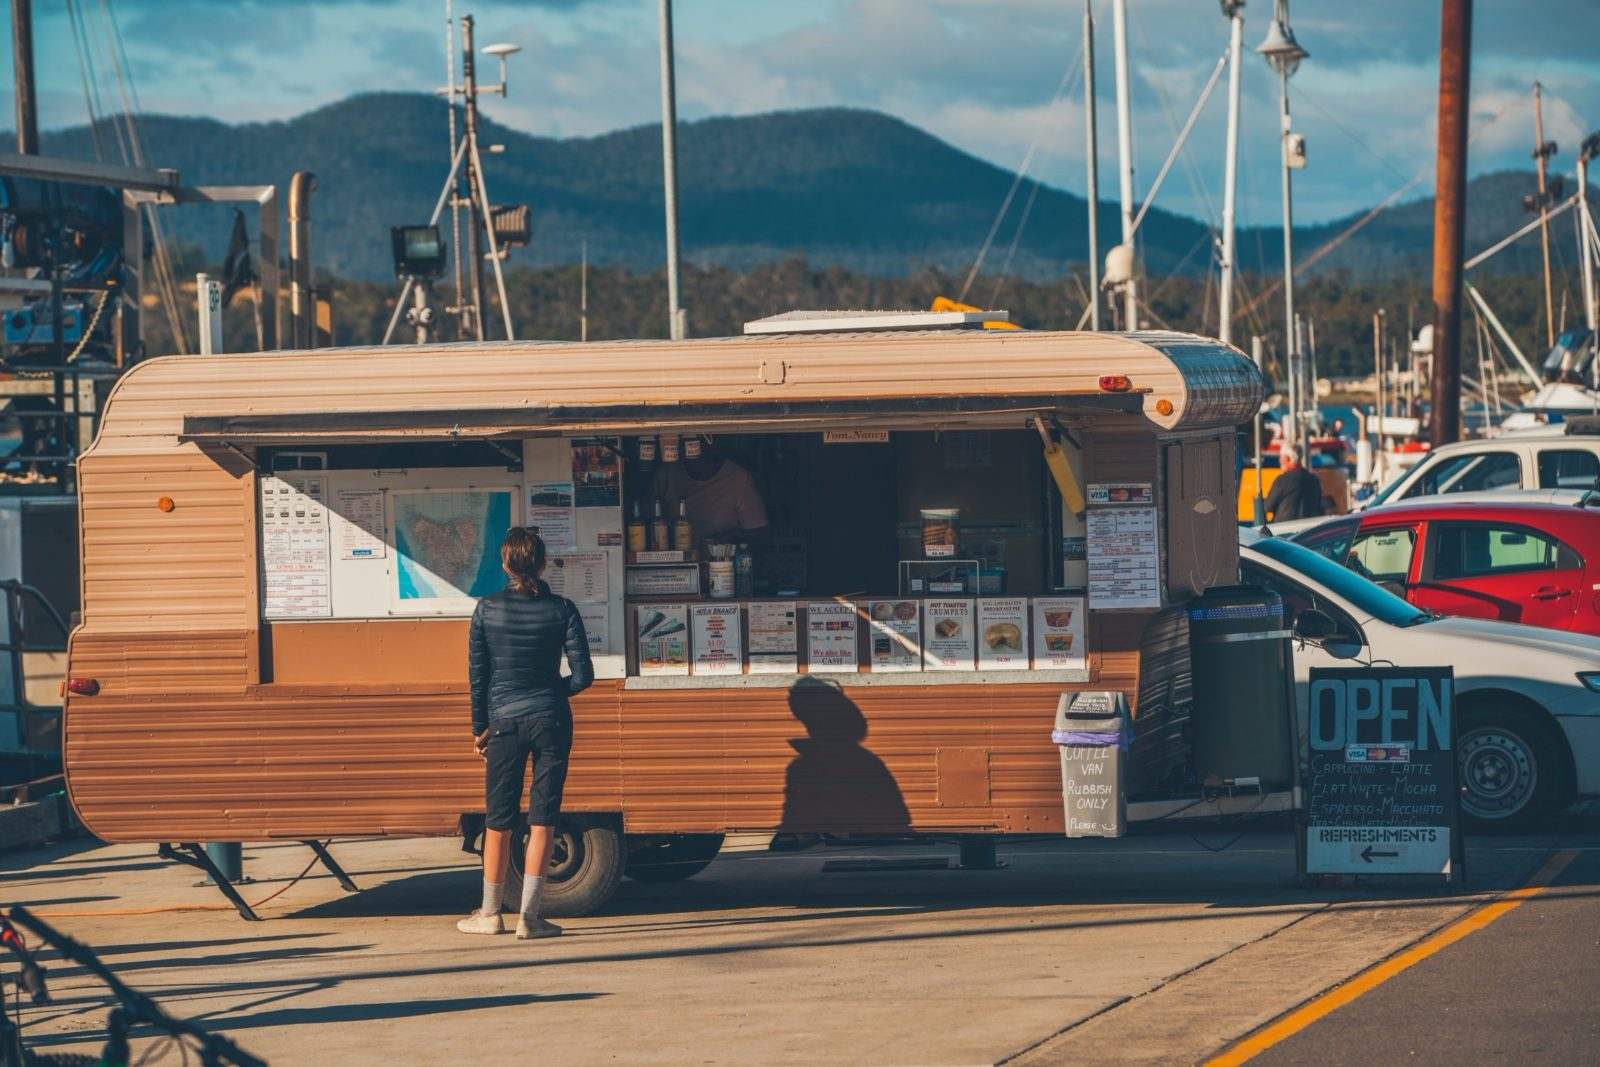 Caravan serving food on the Pier